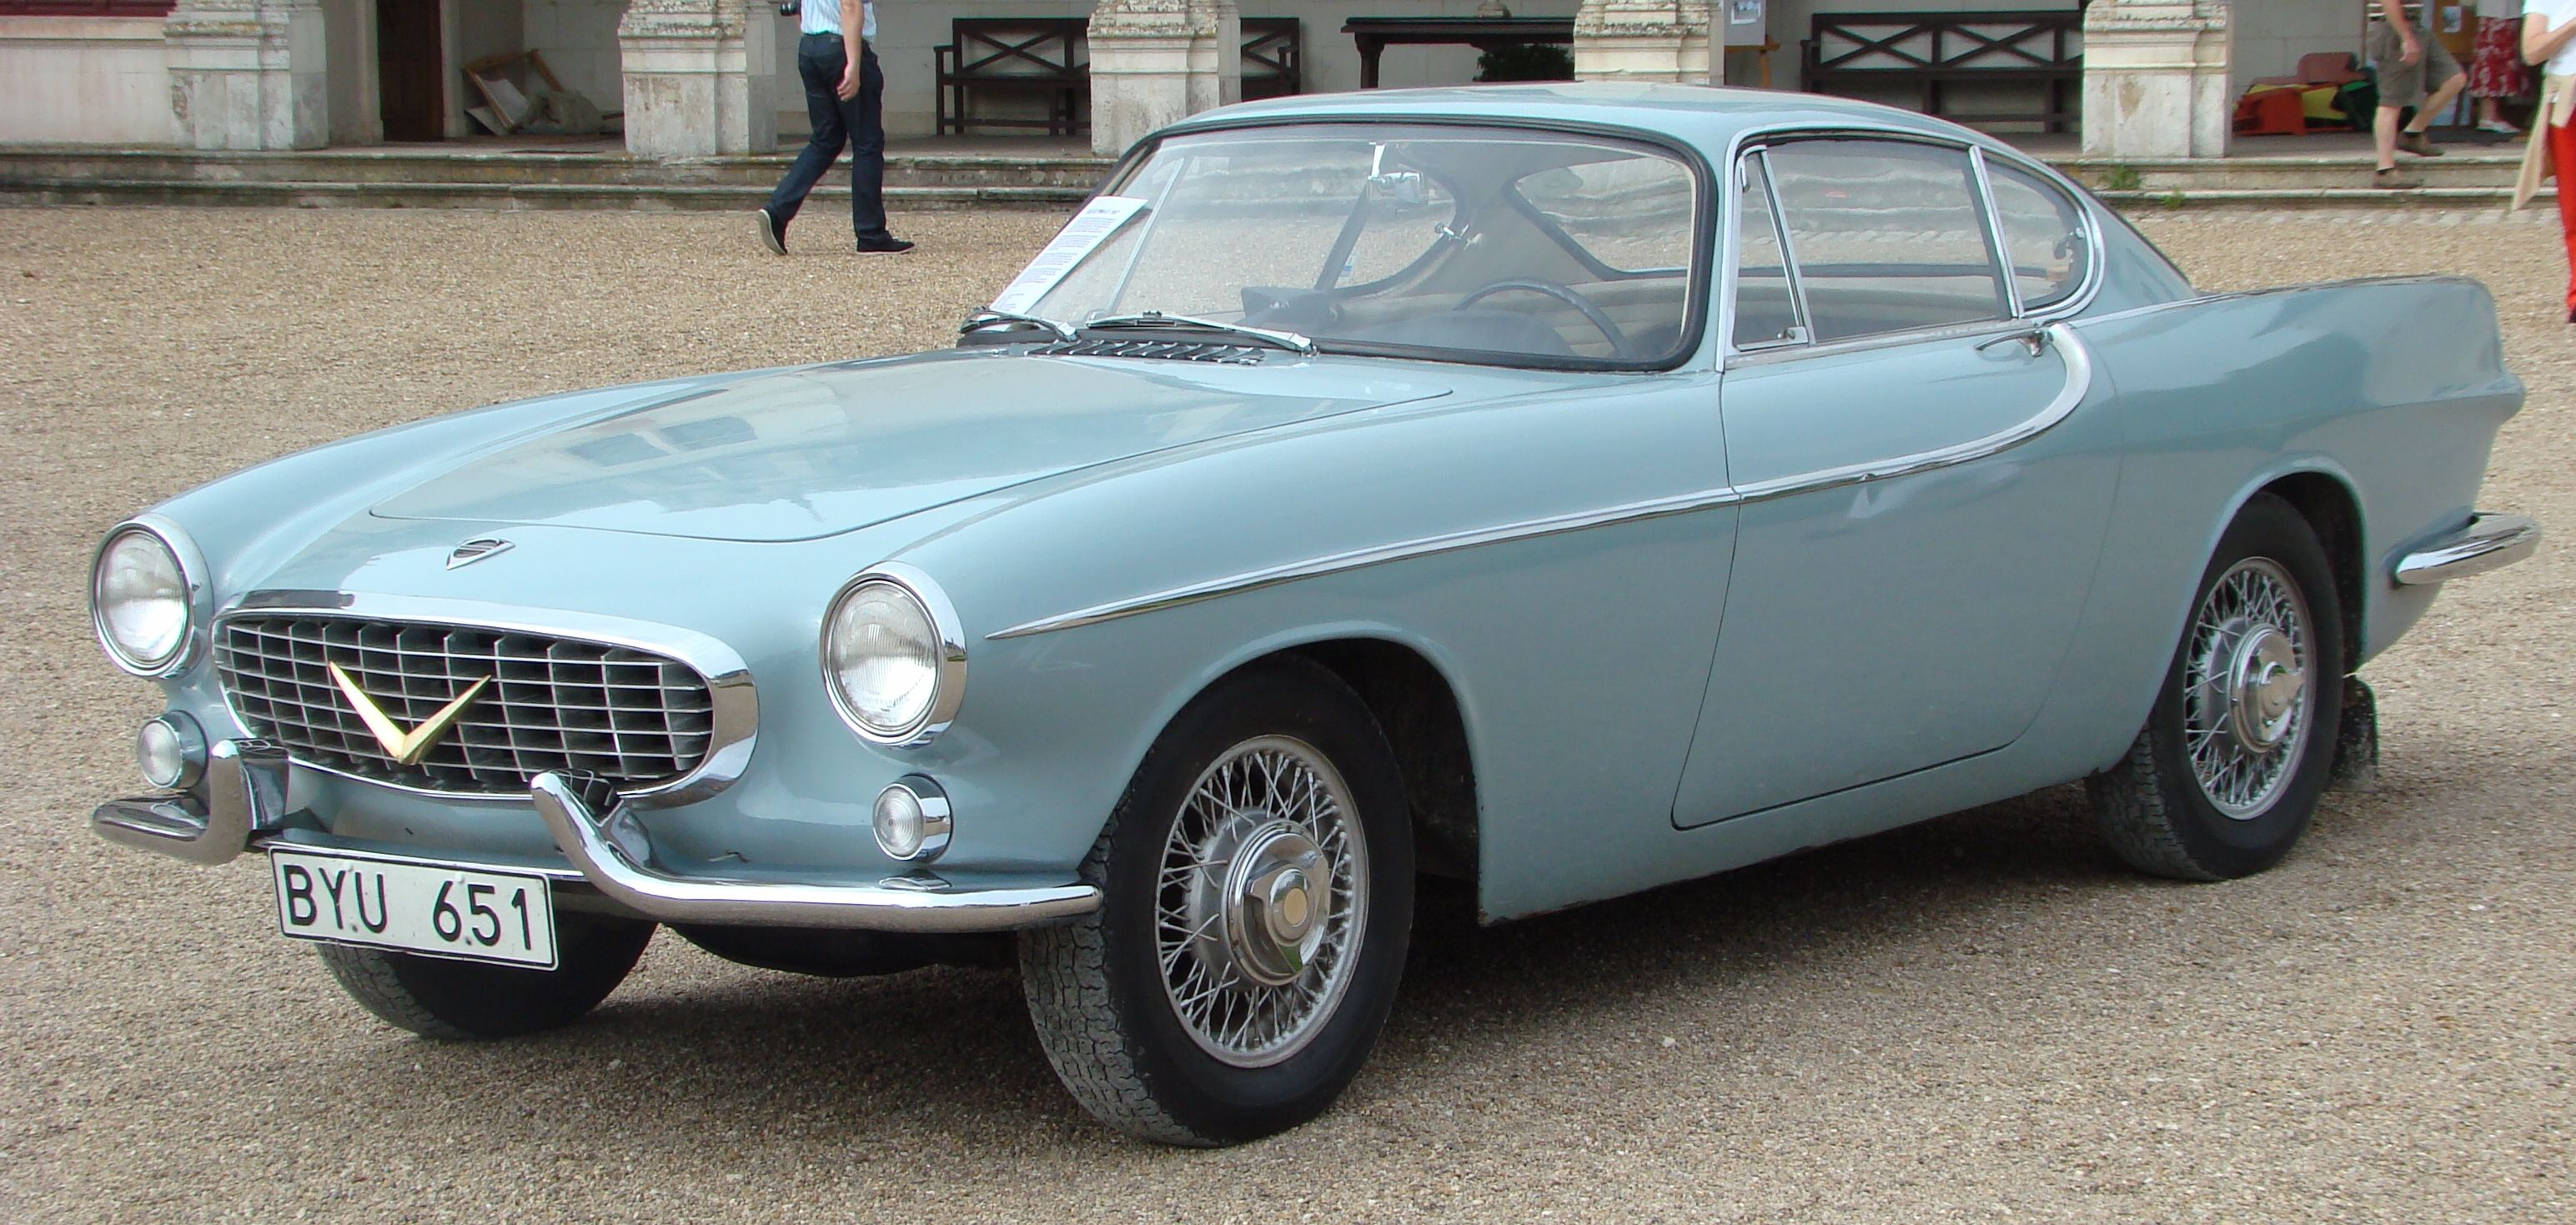 Volvo p 1800 sport the successor of the failed p 1900